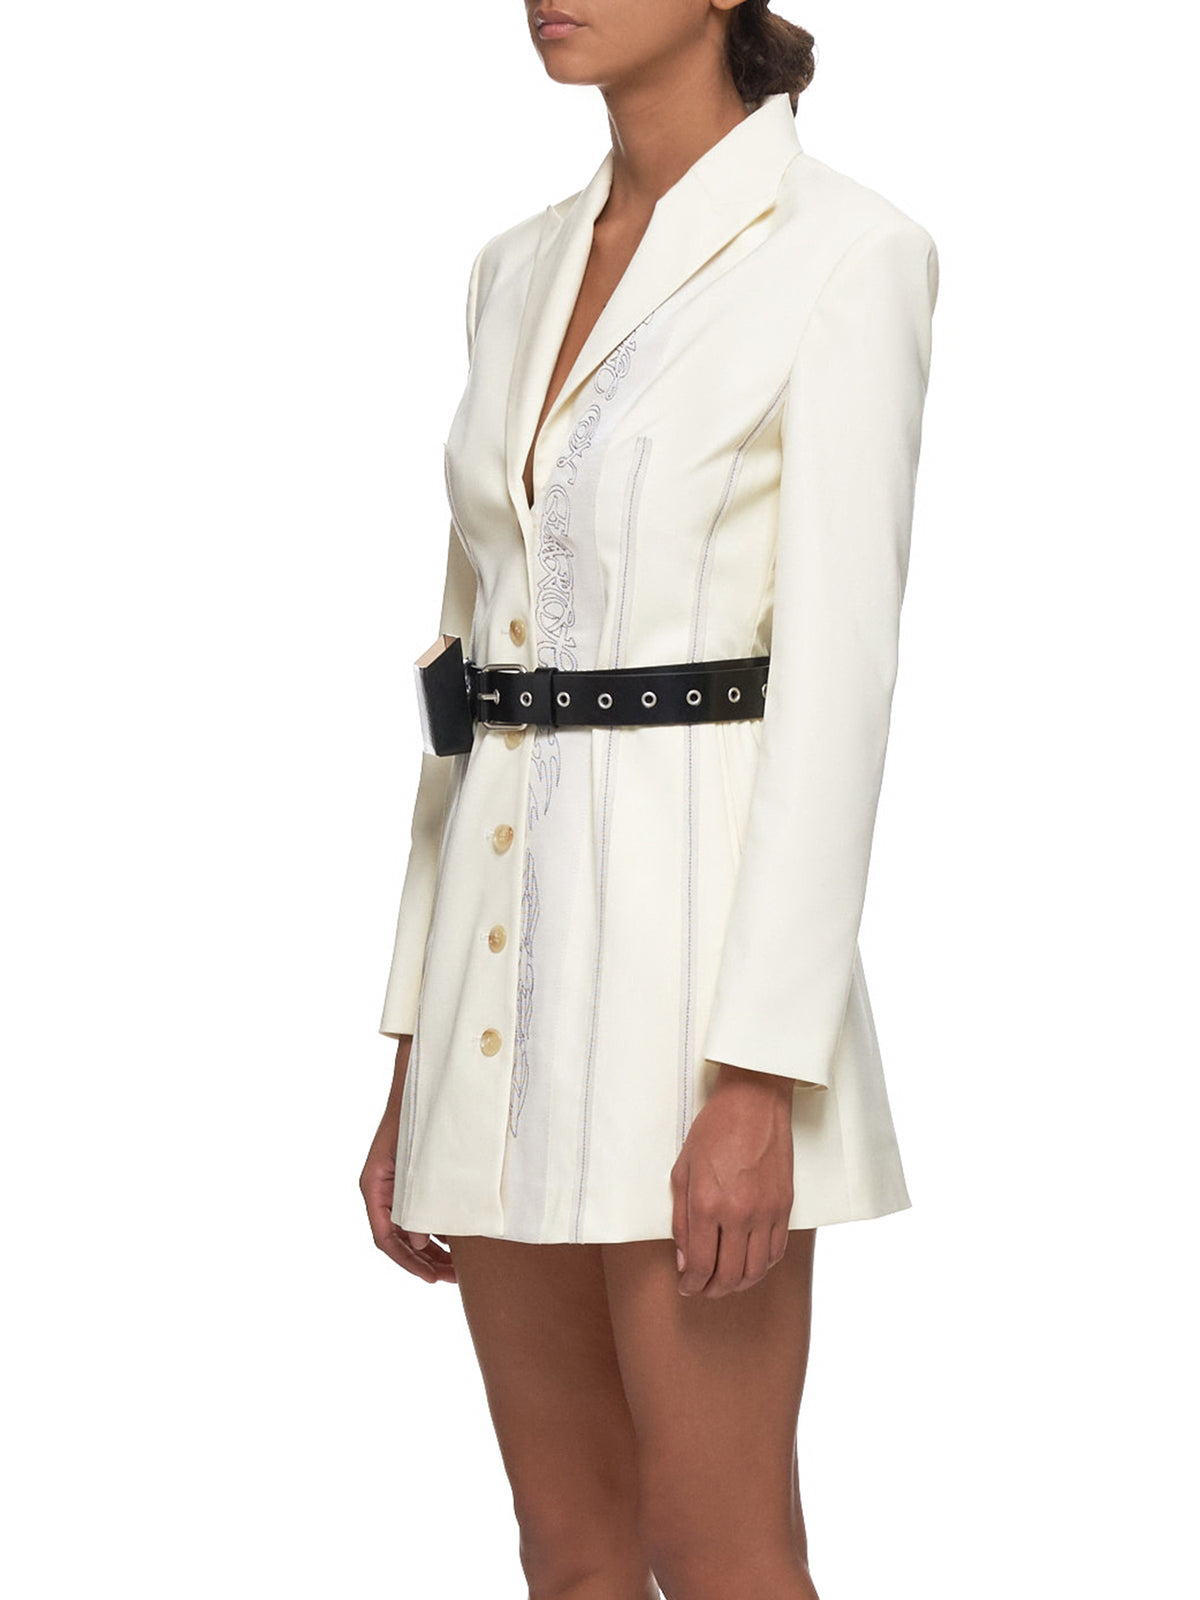 Embroidered Jacket Dress (JK2W-OFFWHITE)